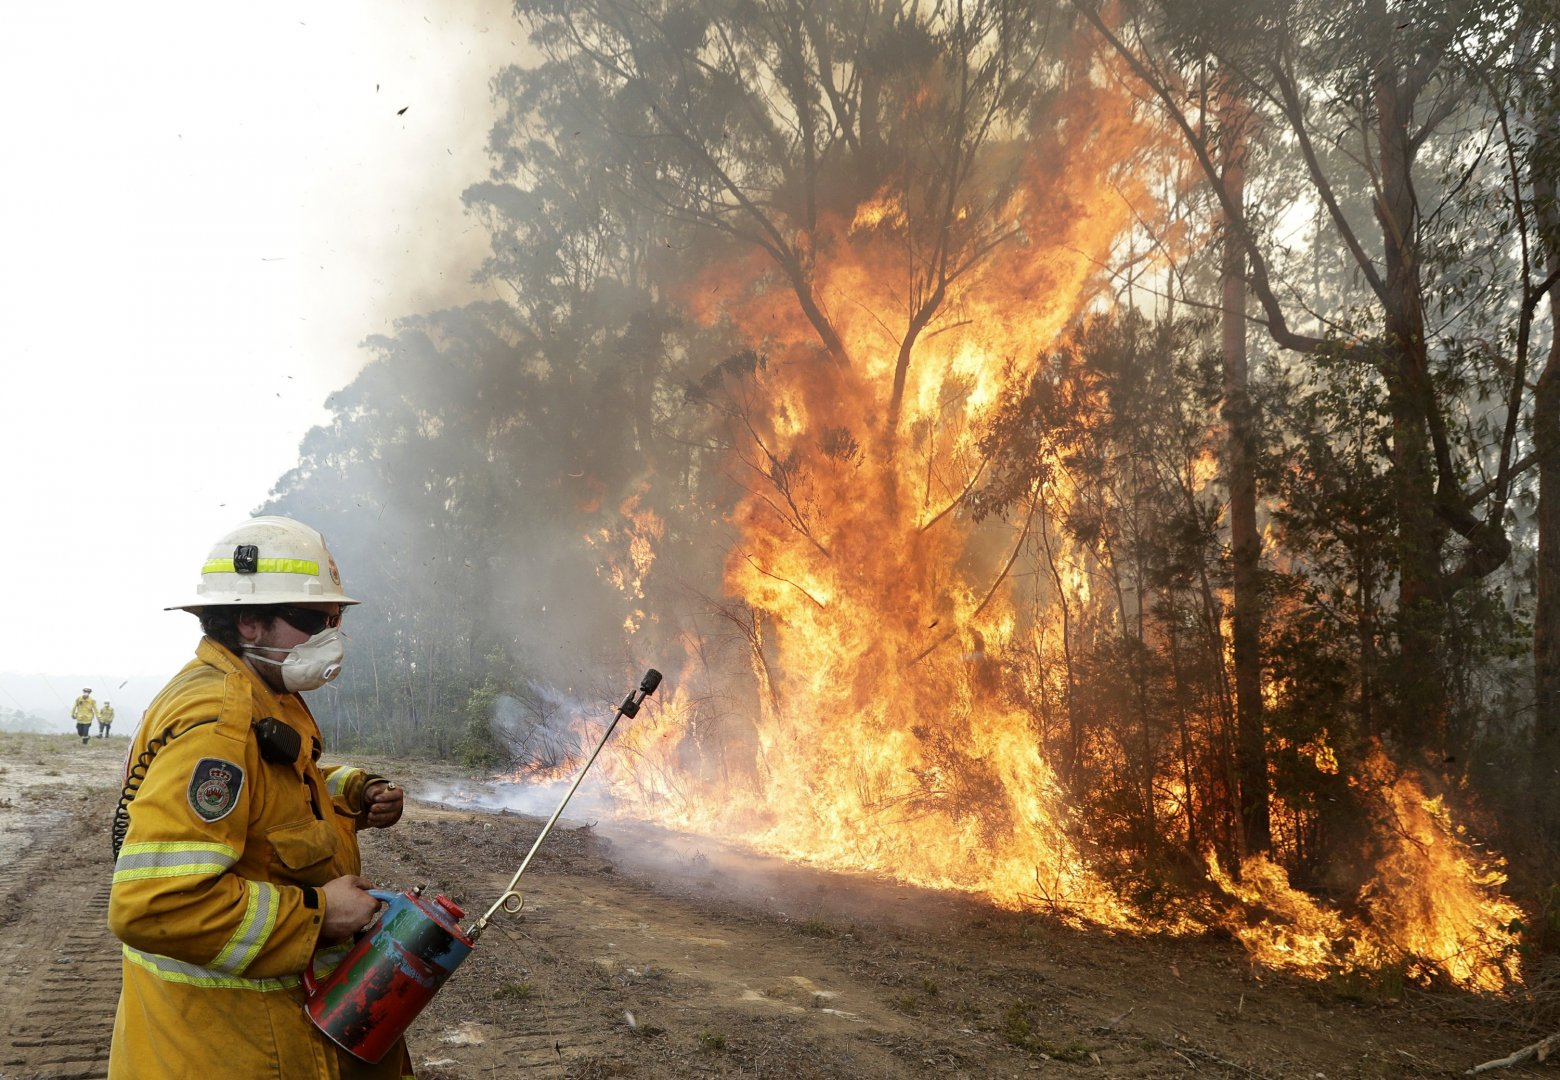 Photograph of a firefighter combating a fire in a line of trees